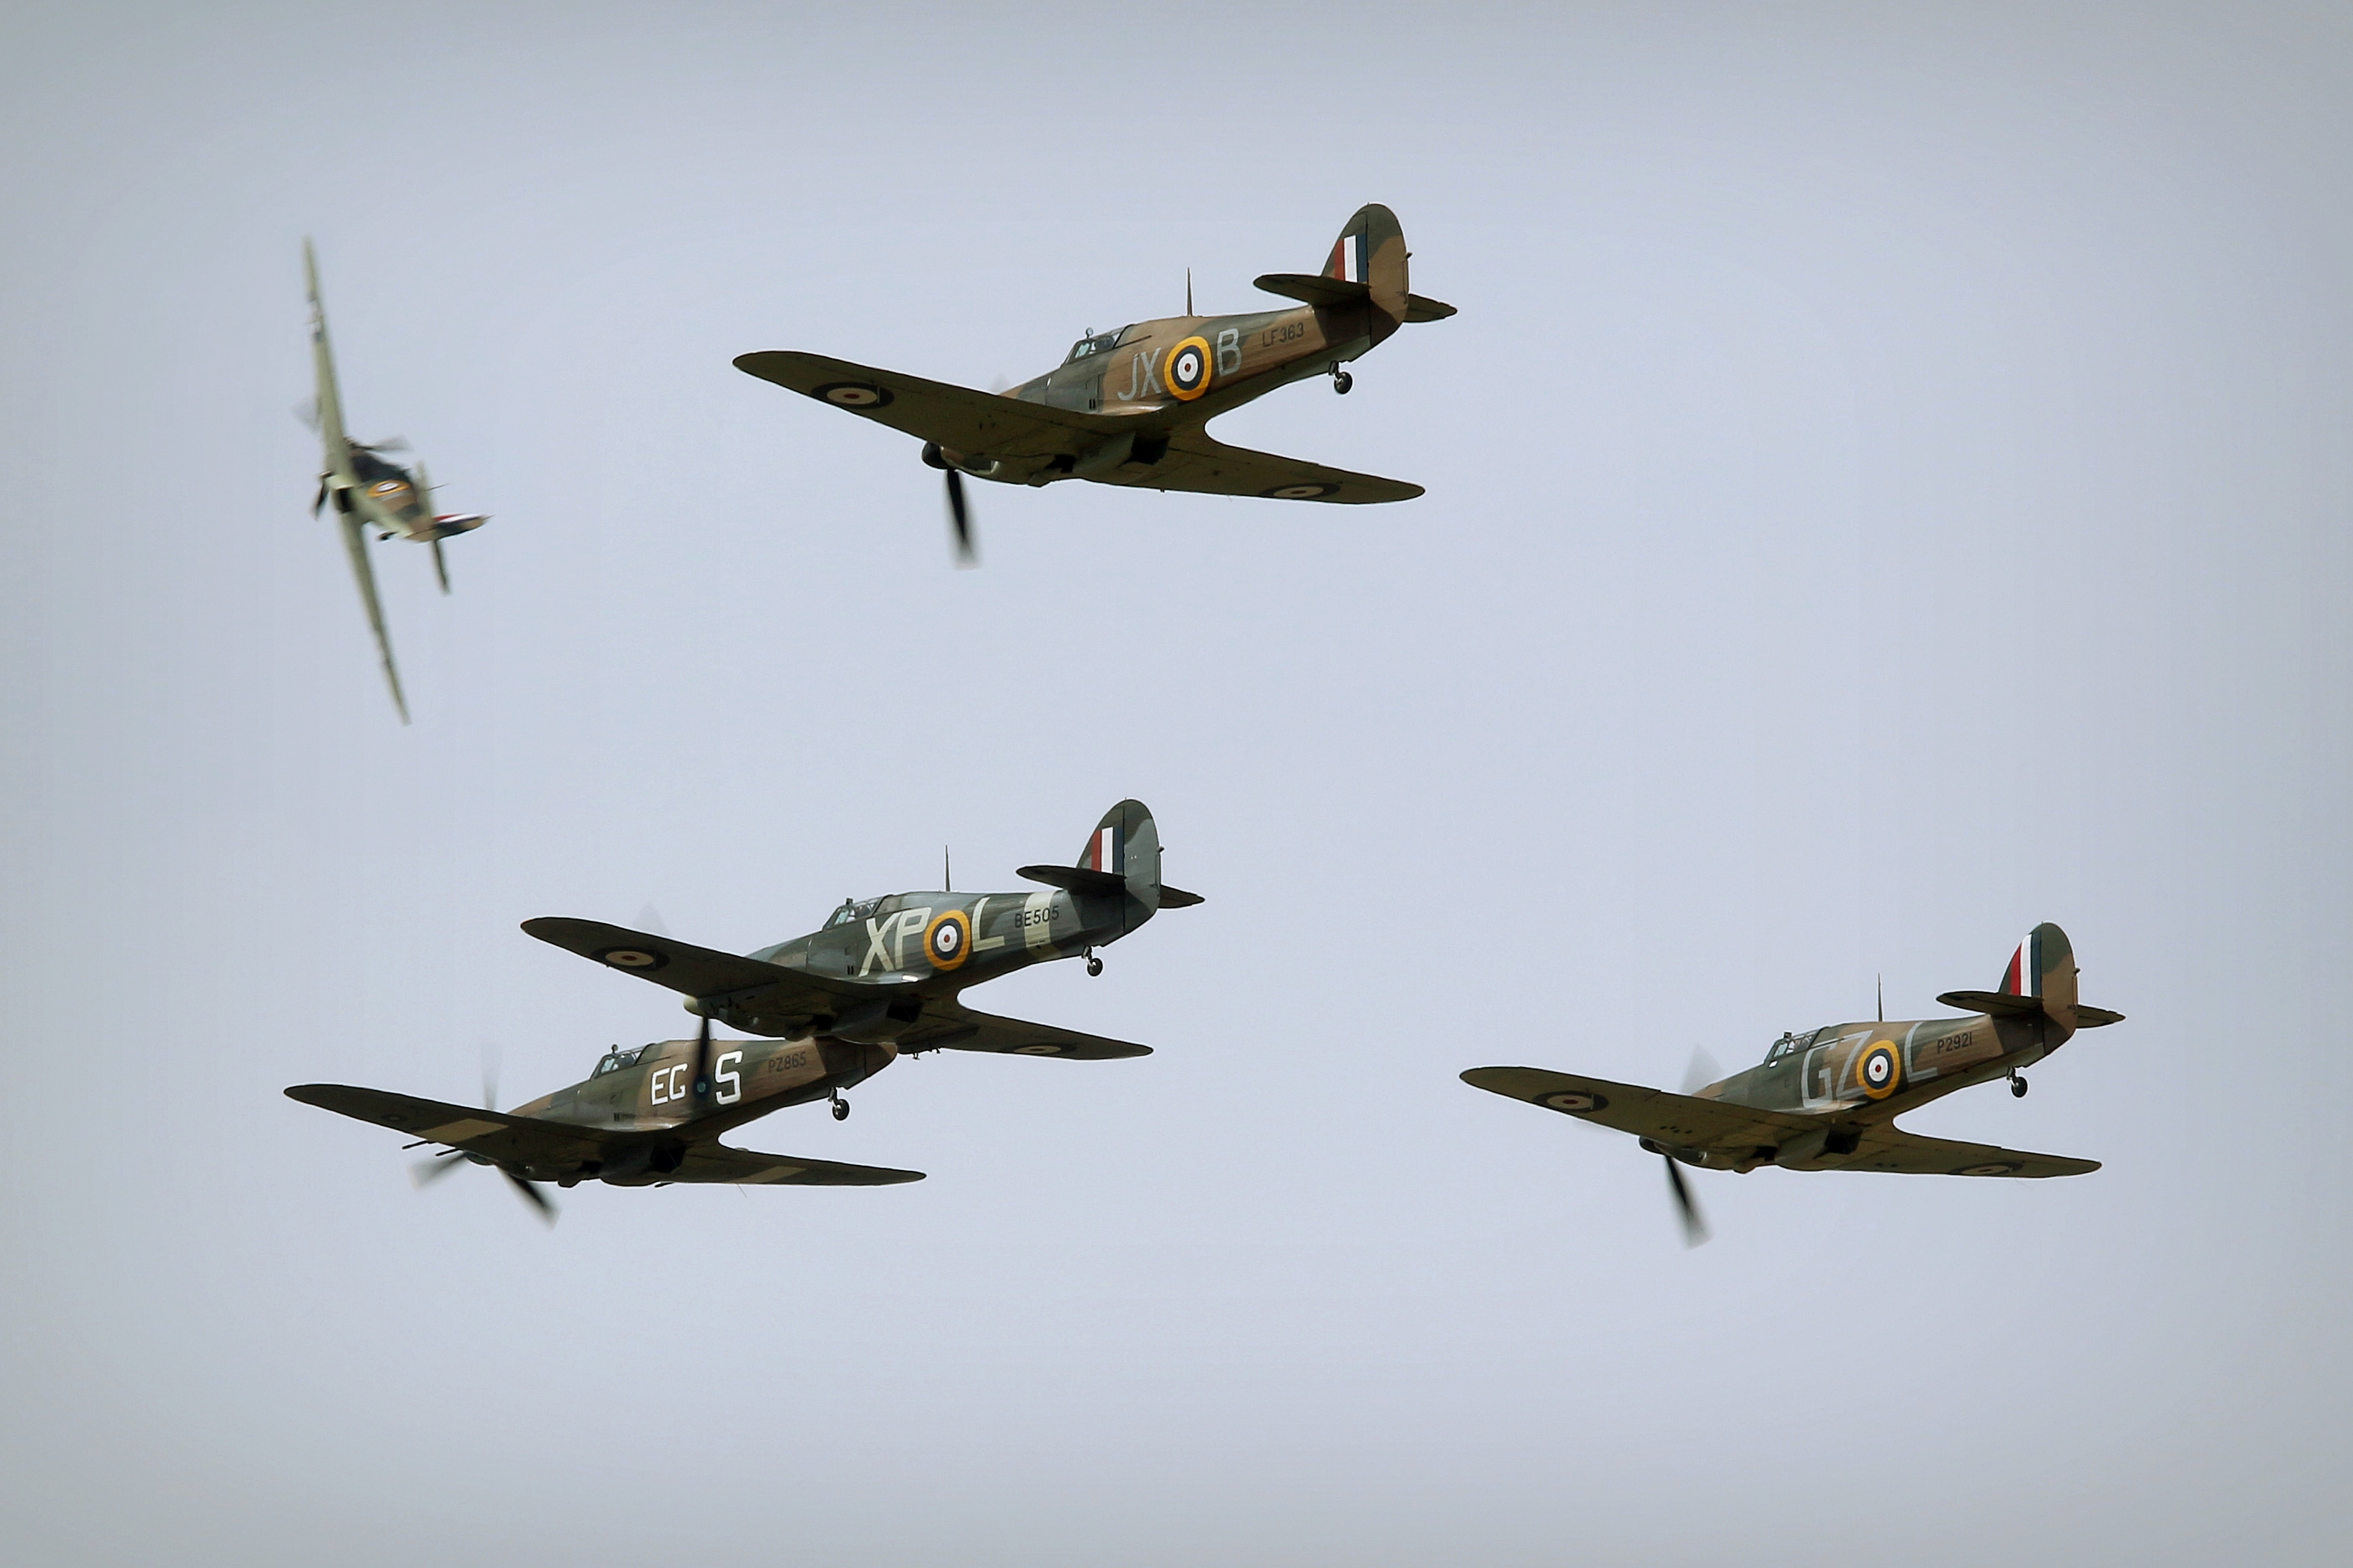 © Jamie Ewan - RIAT 75th Battle of Britain Anniversary Salute - AeroResource 2015 Highlights